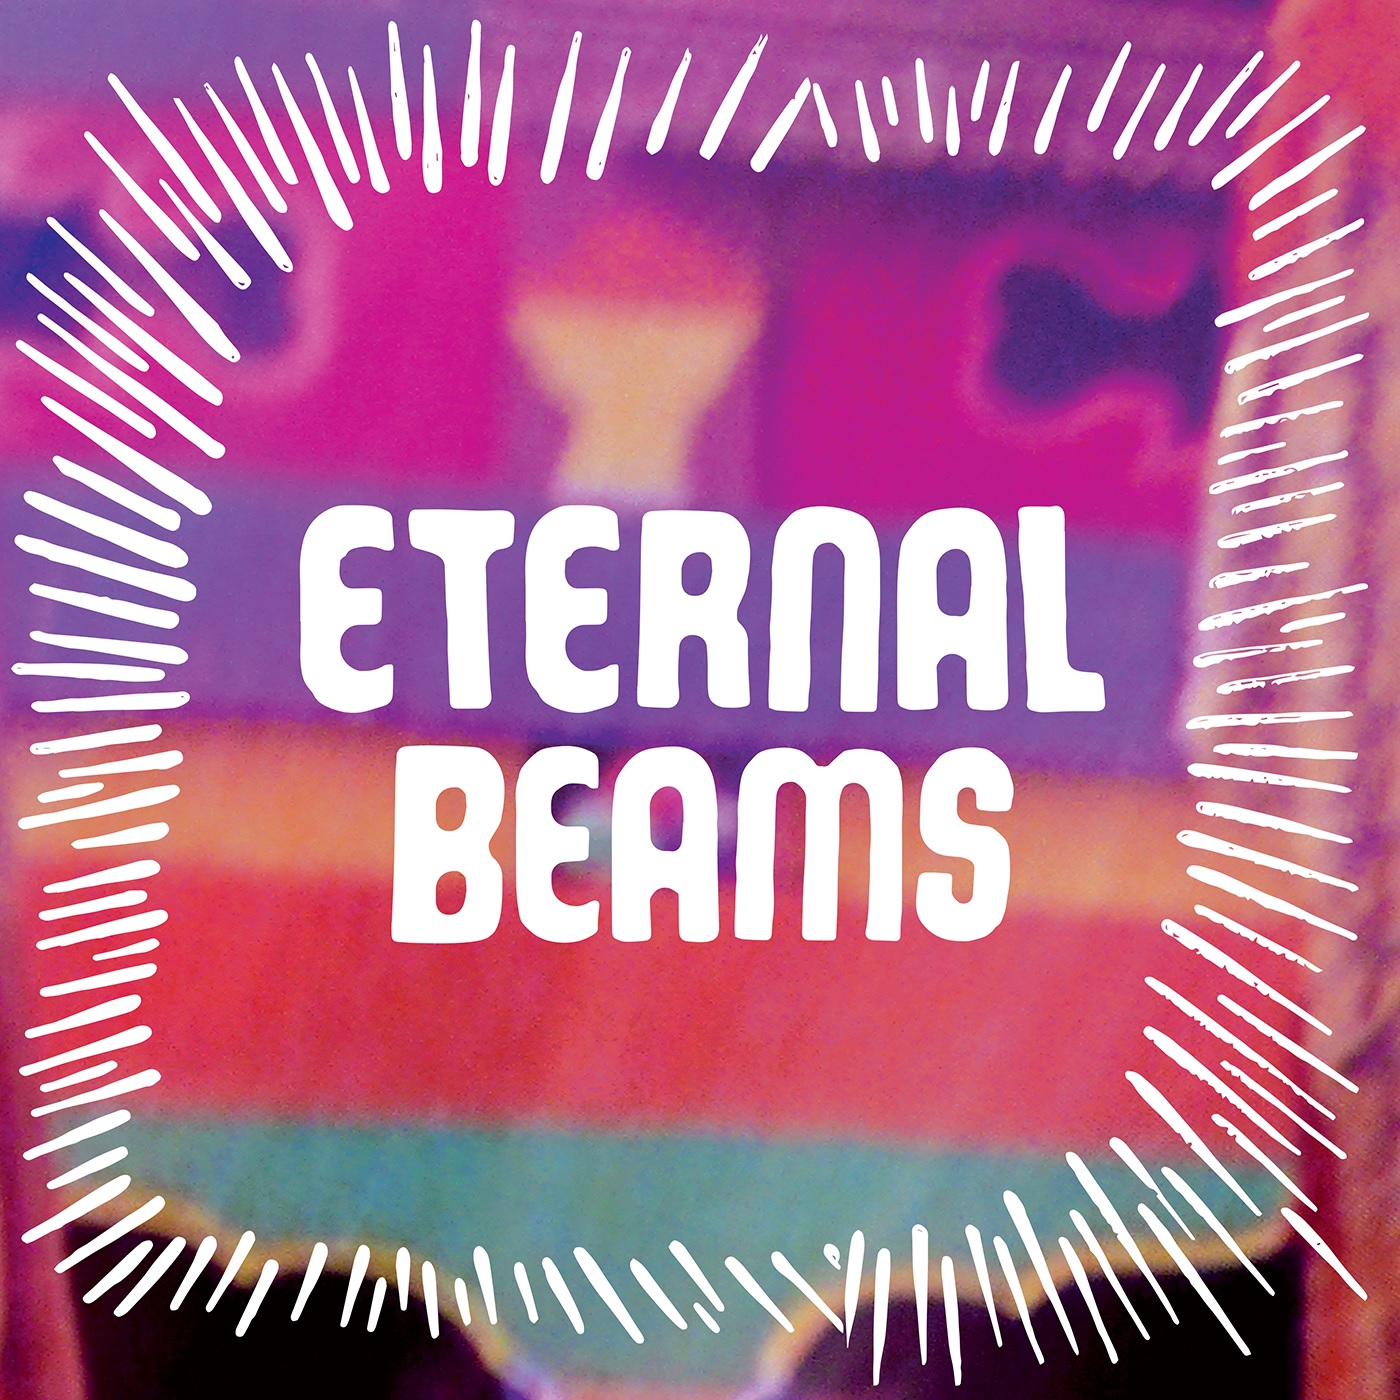 Seahawks/ETERNAL BEAMS CD